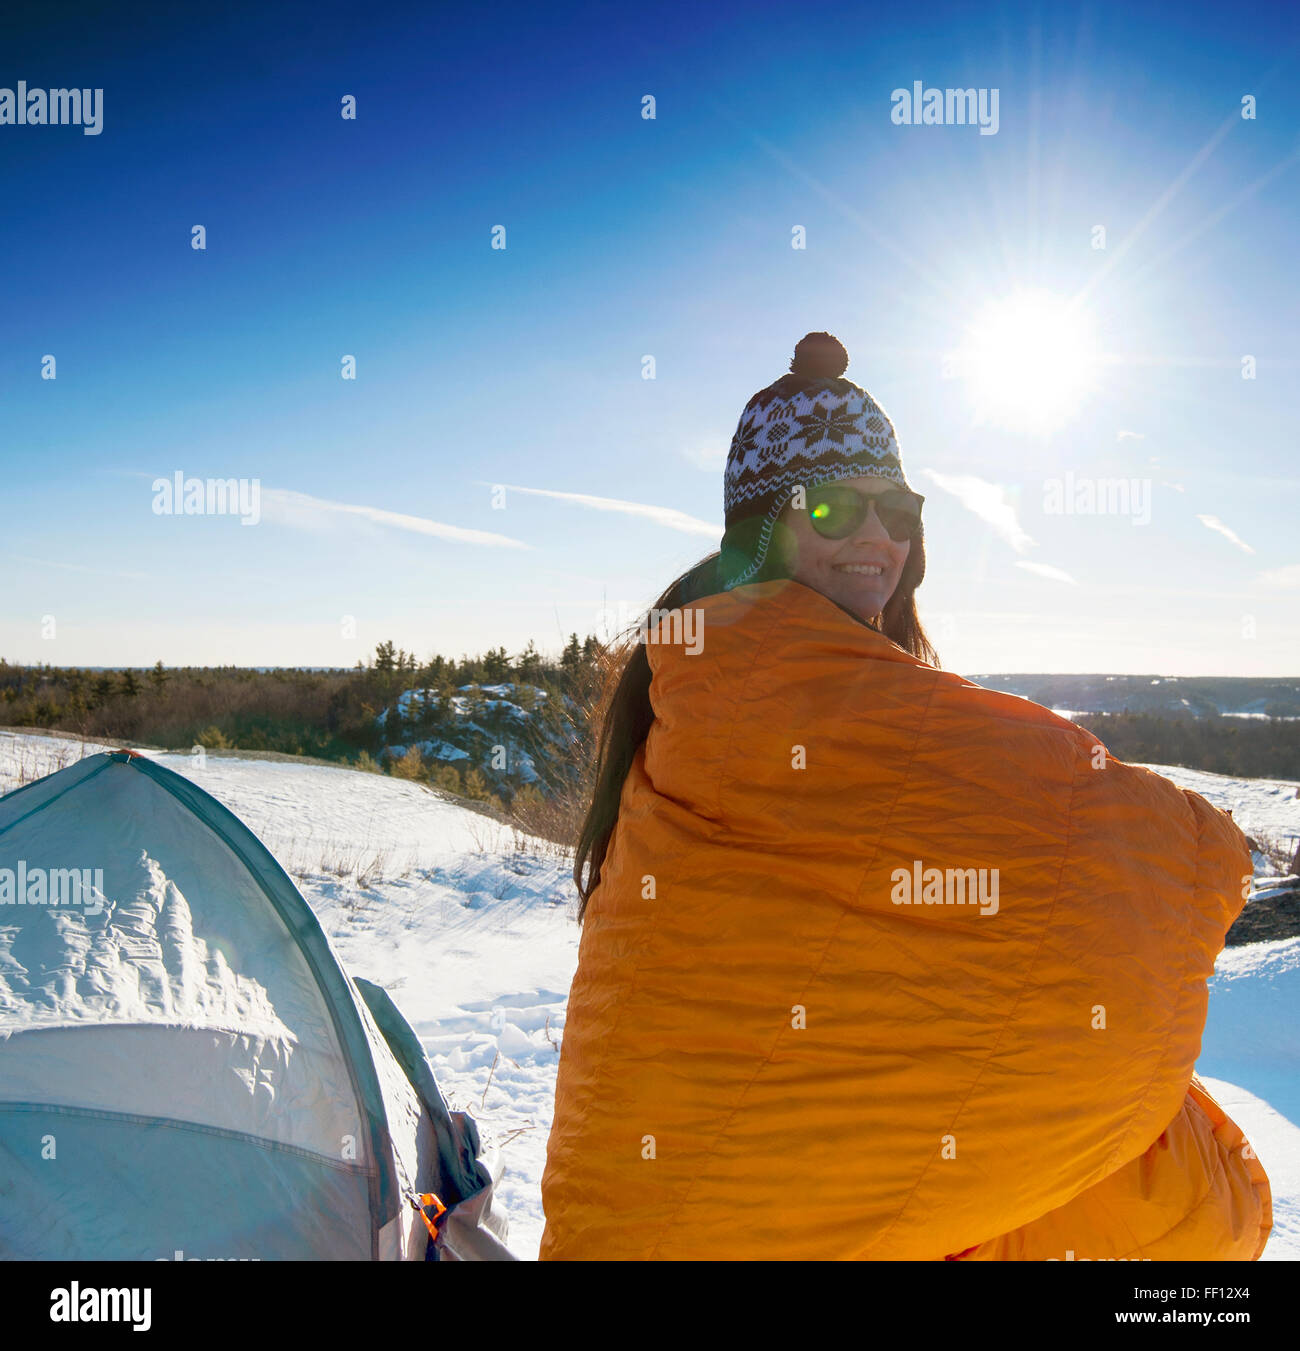 Hiker standing at snowy campsite - Stock Image